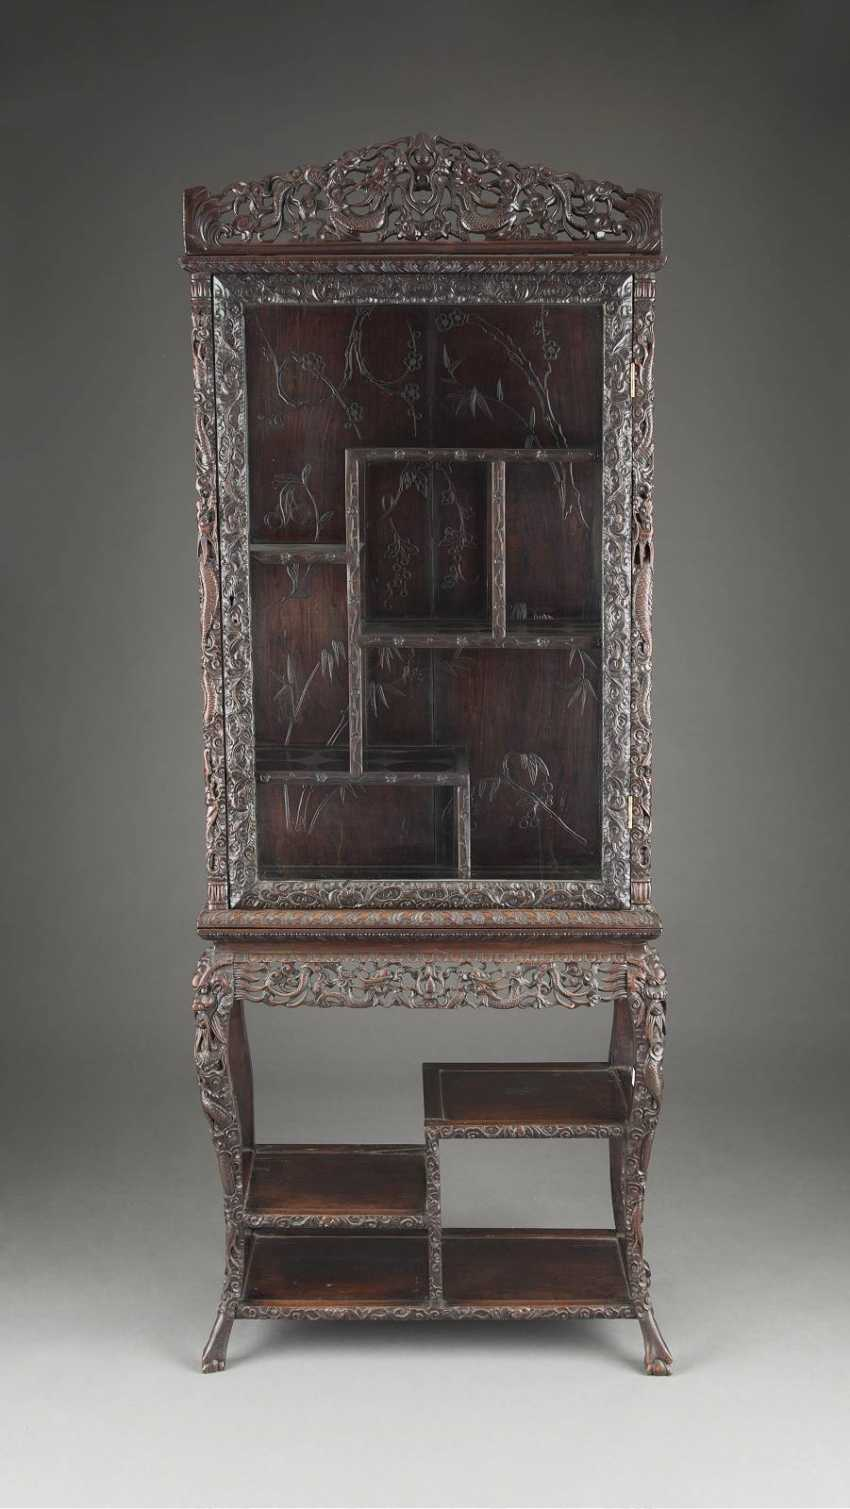 TOP DISPLAY CABINET WITH DRAGON DECORATION IN RELIEF - photo 1